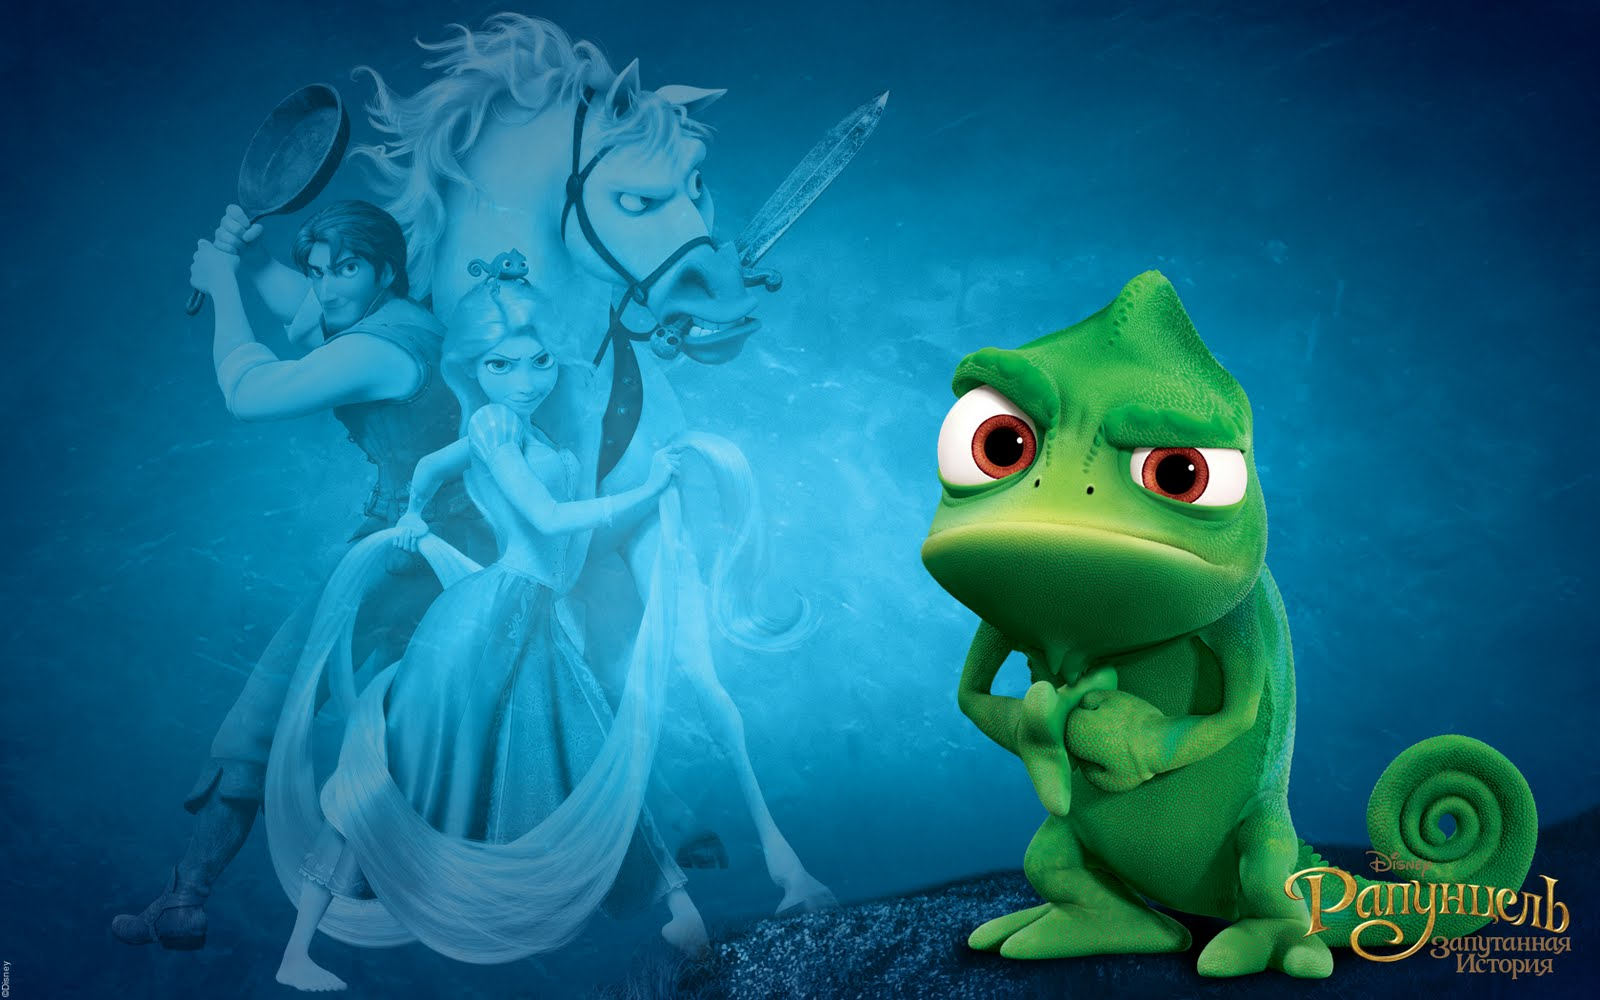 Tangled offical wallpapers tangled pascal 1680x1050 wallpapers for 1600x1000